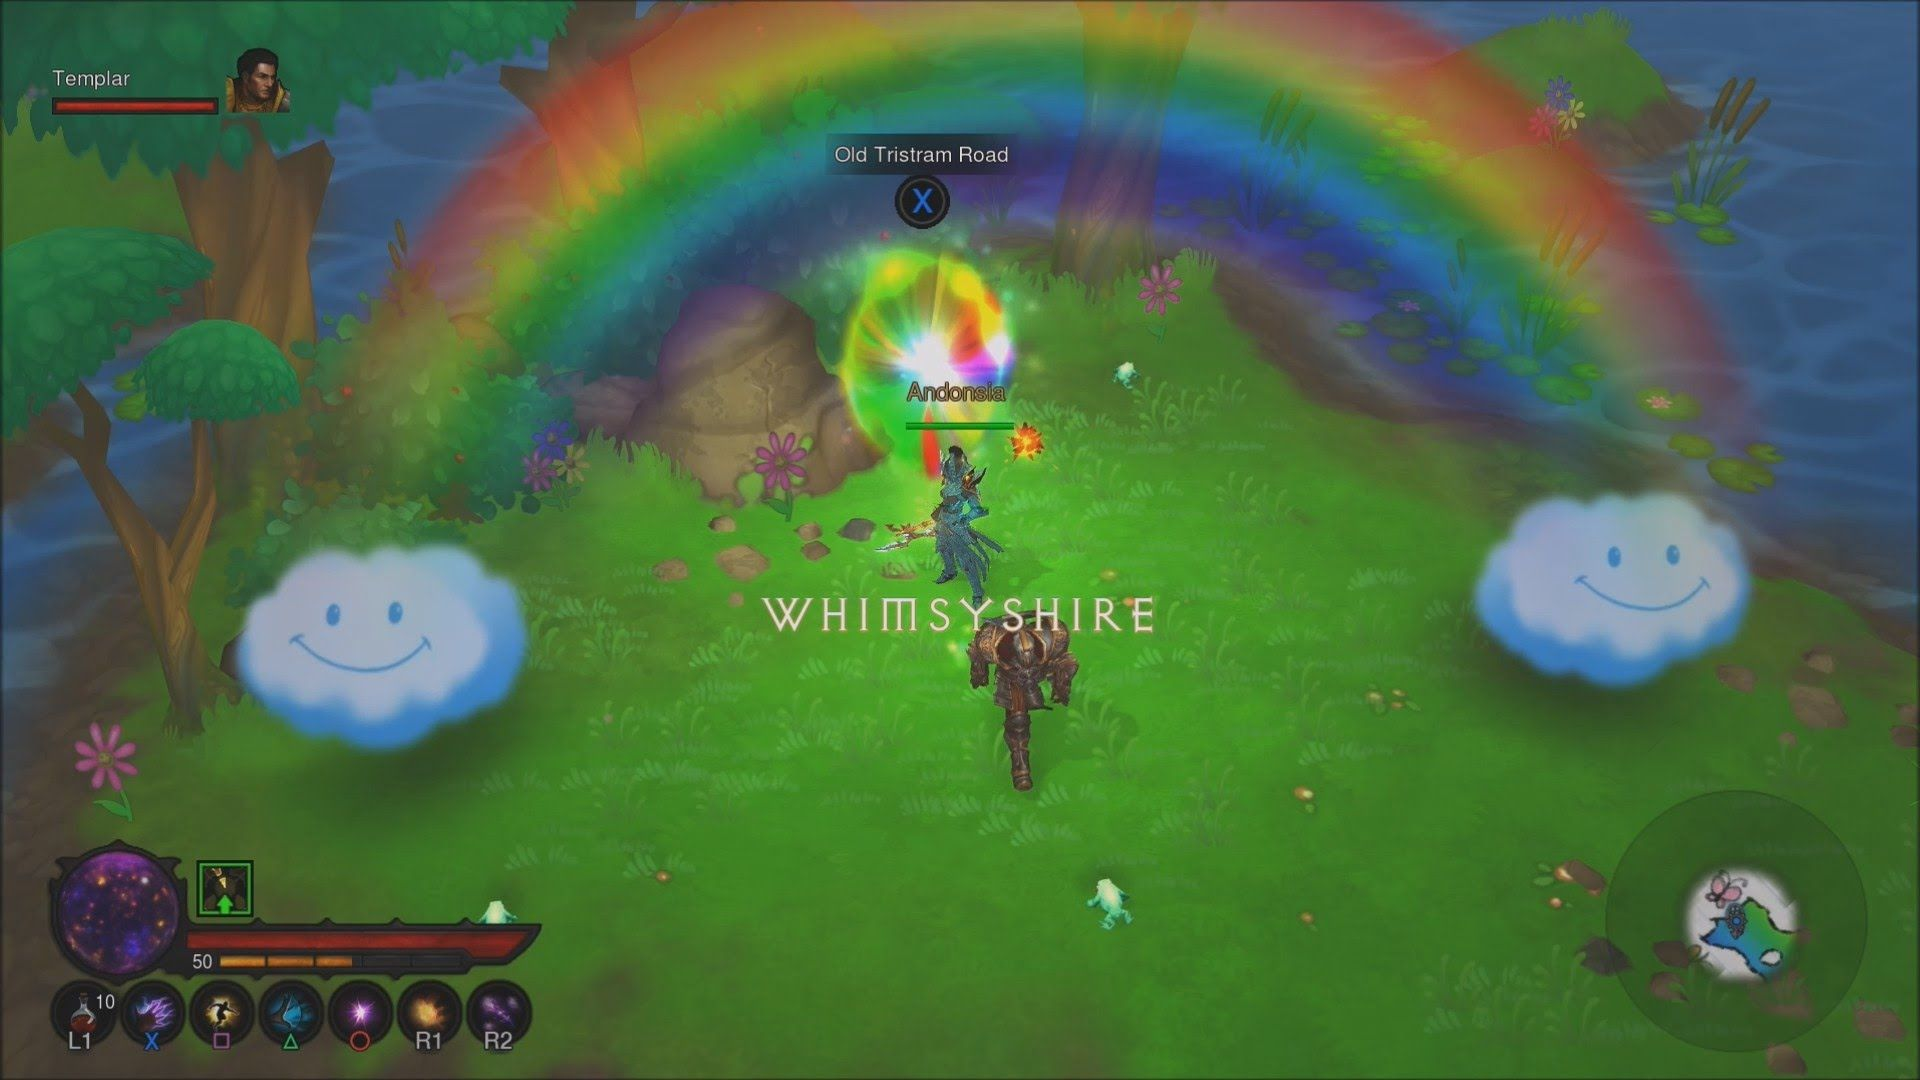 Diablo 3 PS4 Whimsyshire (Pony Level) Gameplay | PS4